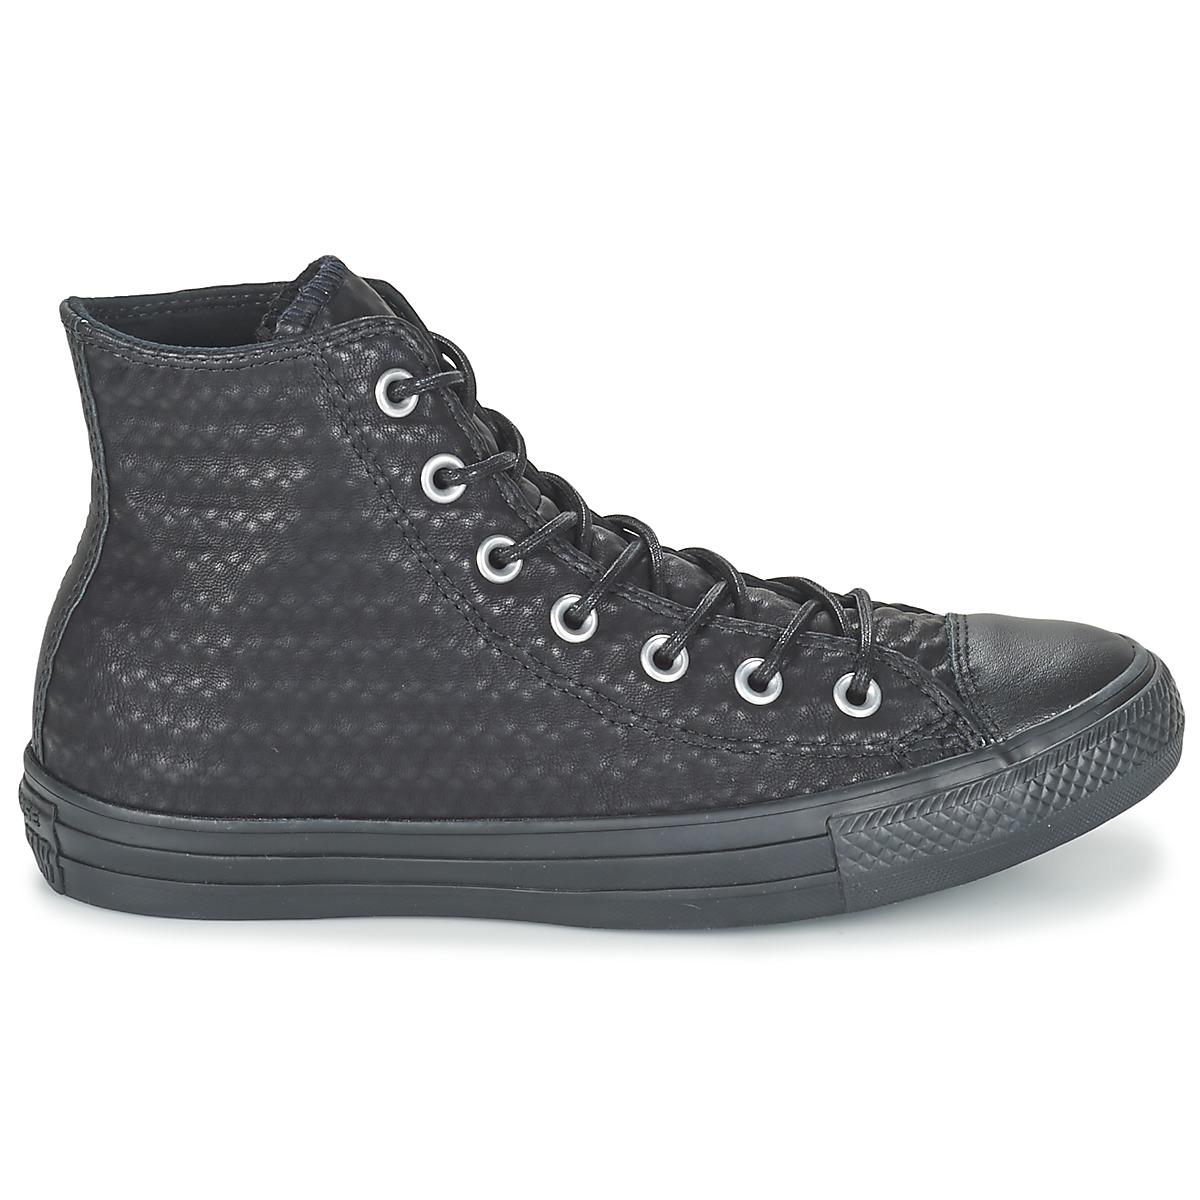 Converse Chuck Taylor All Star Craft Cuir Hi Shoes (high-top Trainers) in Black